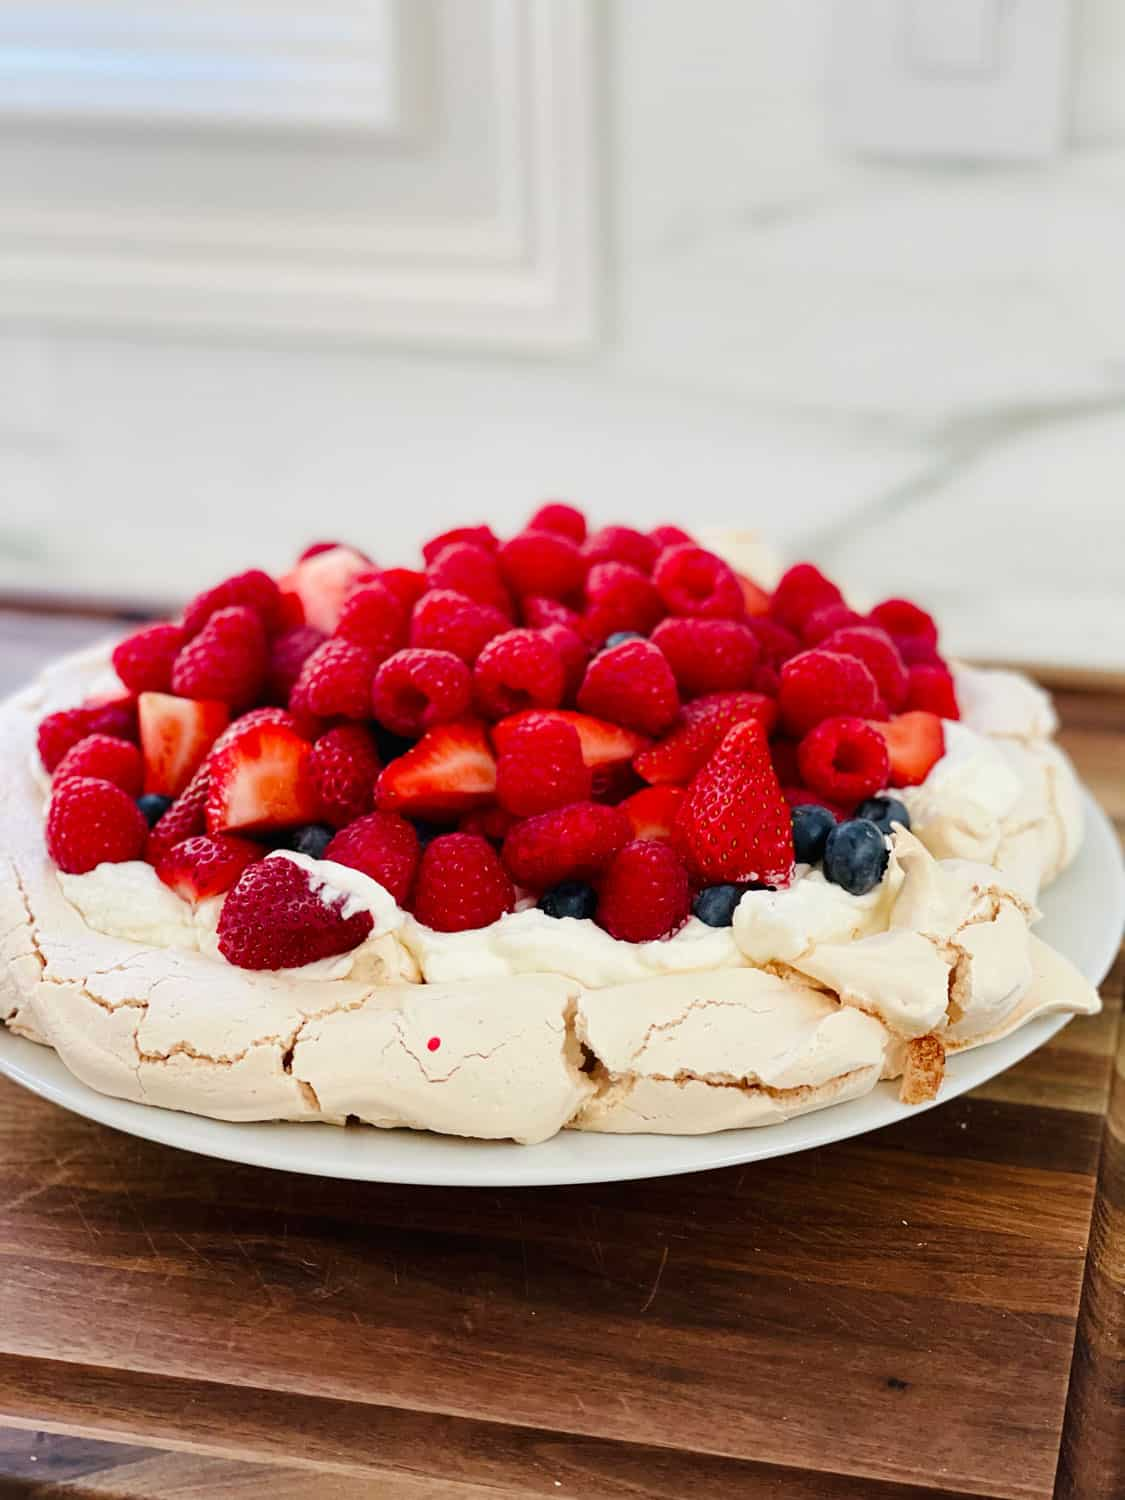 egg white dessert with mixed berries